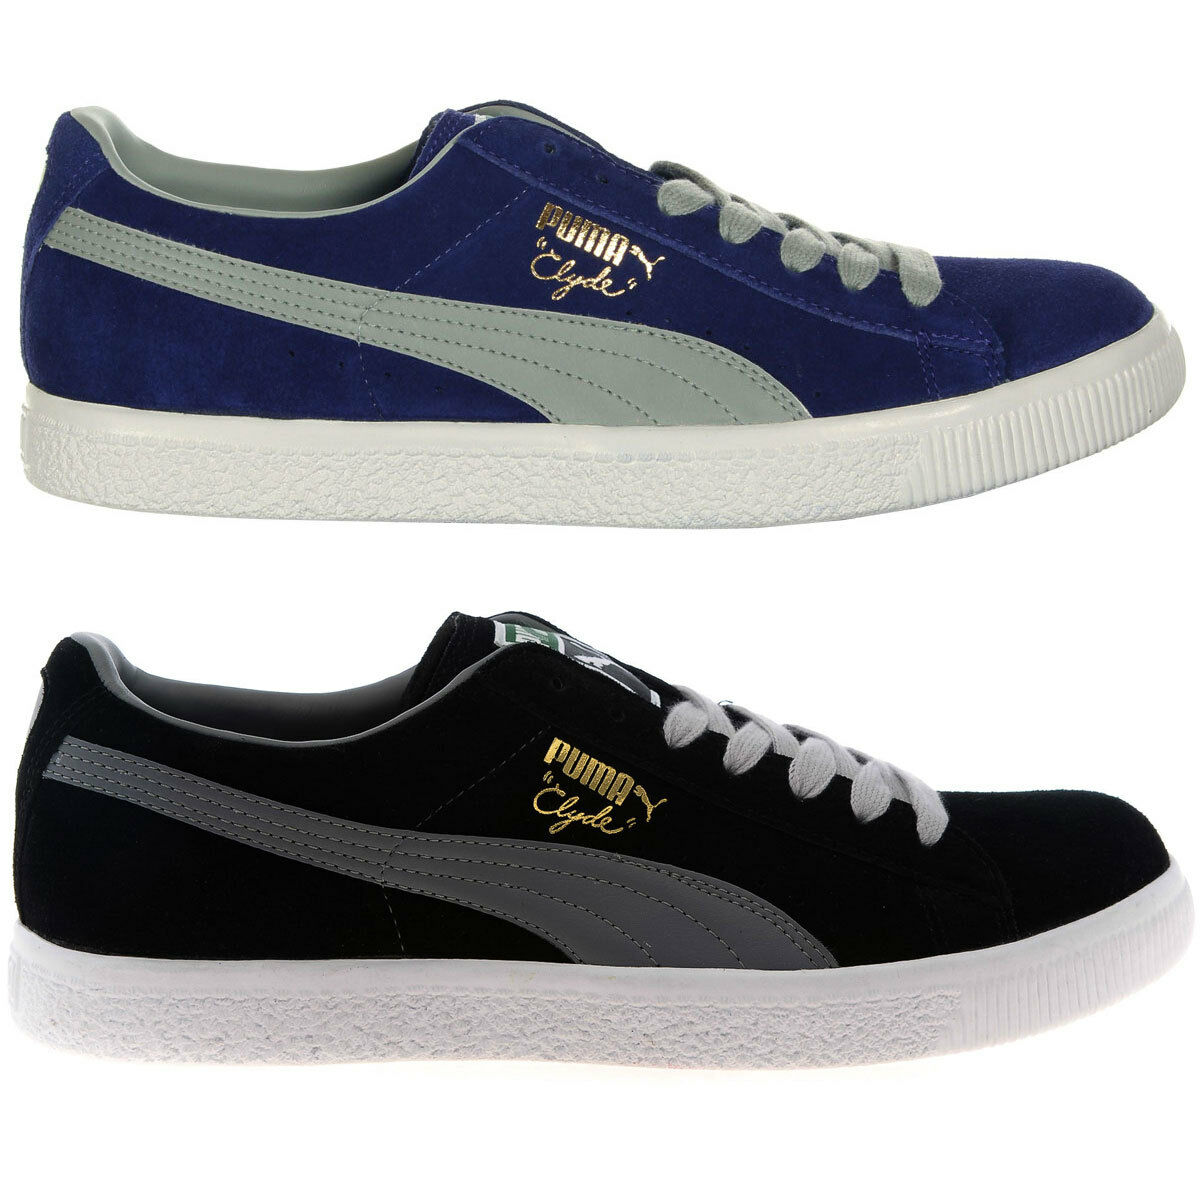 Puma Clyde Script Zapatos Hombre Trainers Zapatos Casual Zapatos Script Brand New Fashion Sneaker 2fd1a4